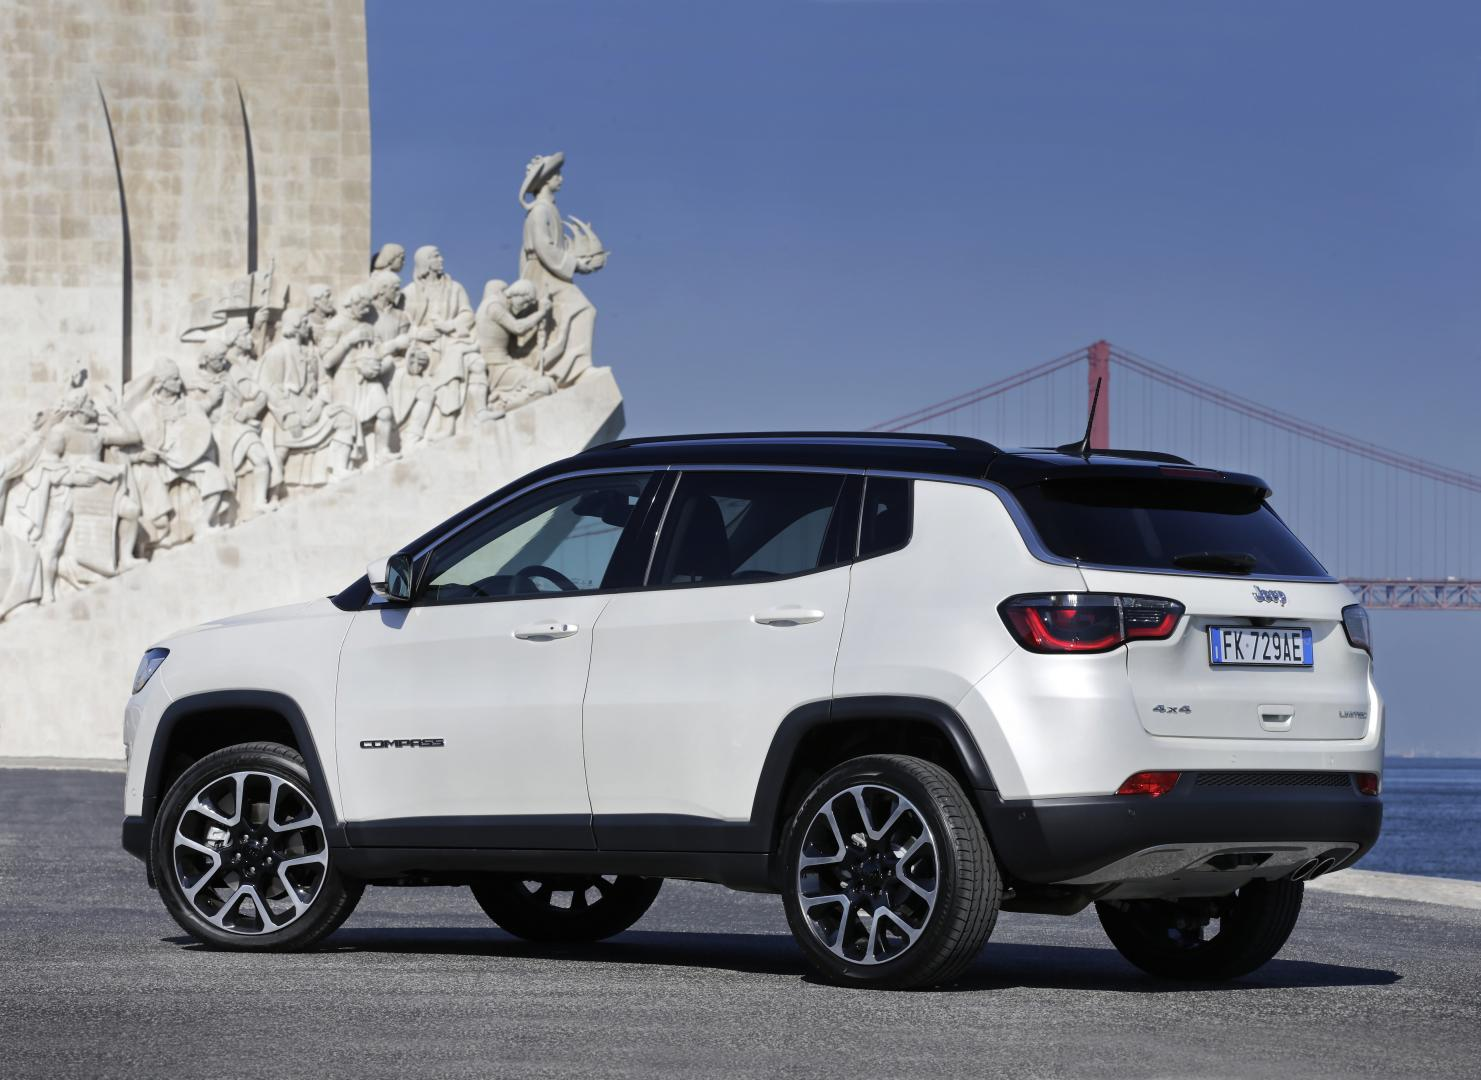 Jeep Compass 1.4 MultiAir Limited A9 4x4 (2017)